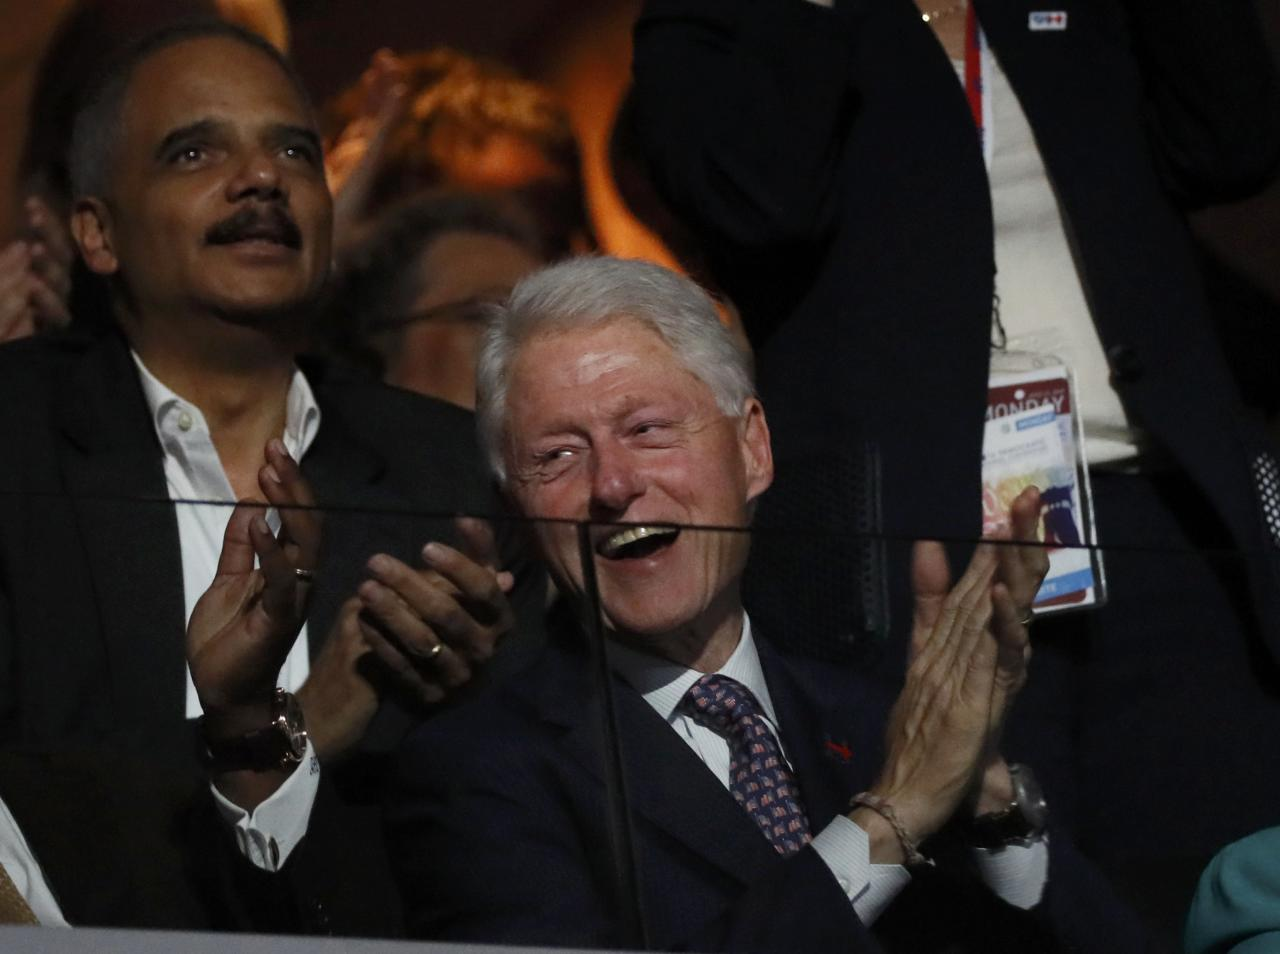 Former U.S. President Bill Clinton reacts to the speech by first lady Michelle Obama as former Attorney General Eric Holder (rear) applauds at the Democratic National Convention in Philadelphia, Pennsylvania, U.S. July 25, 2016.  REUTERS/Mike Segar